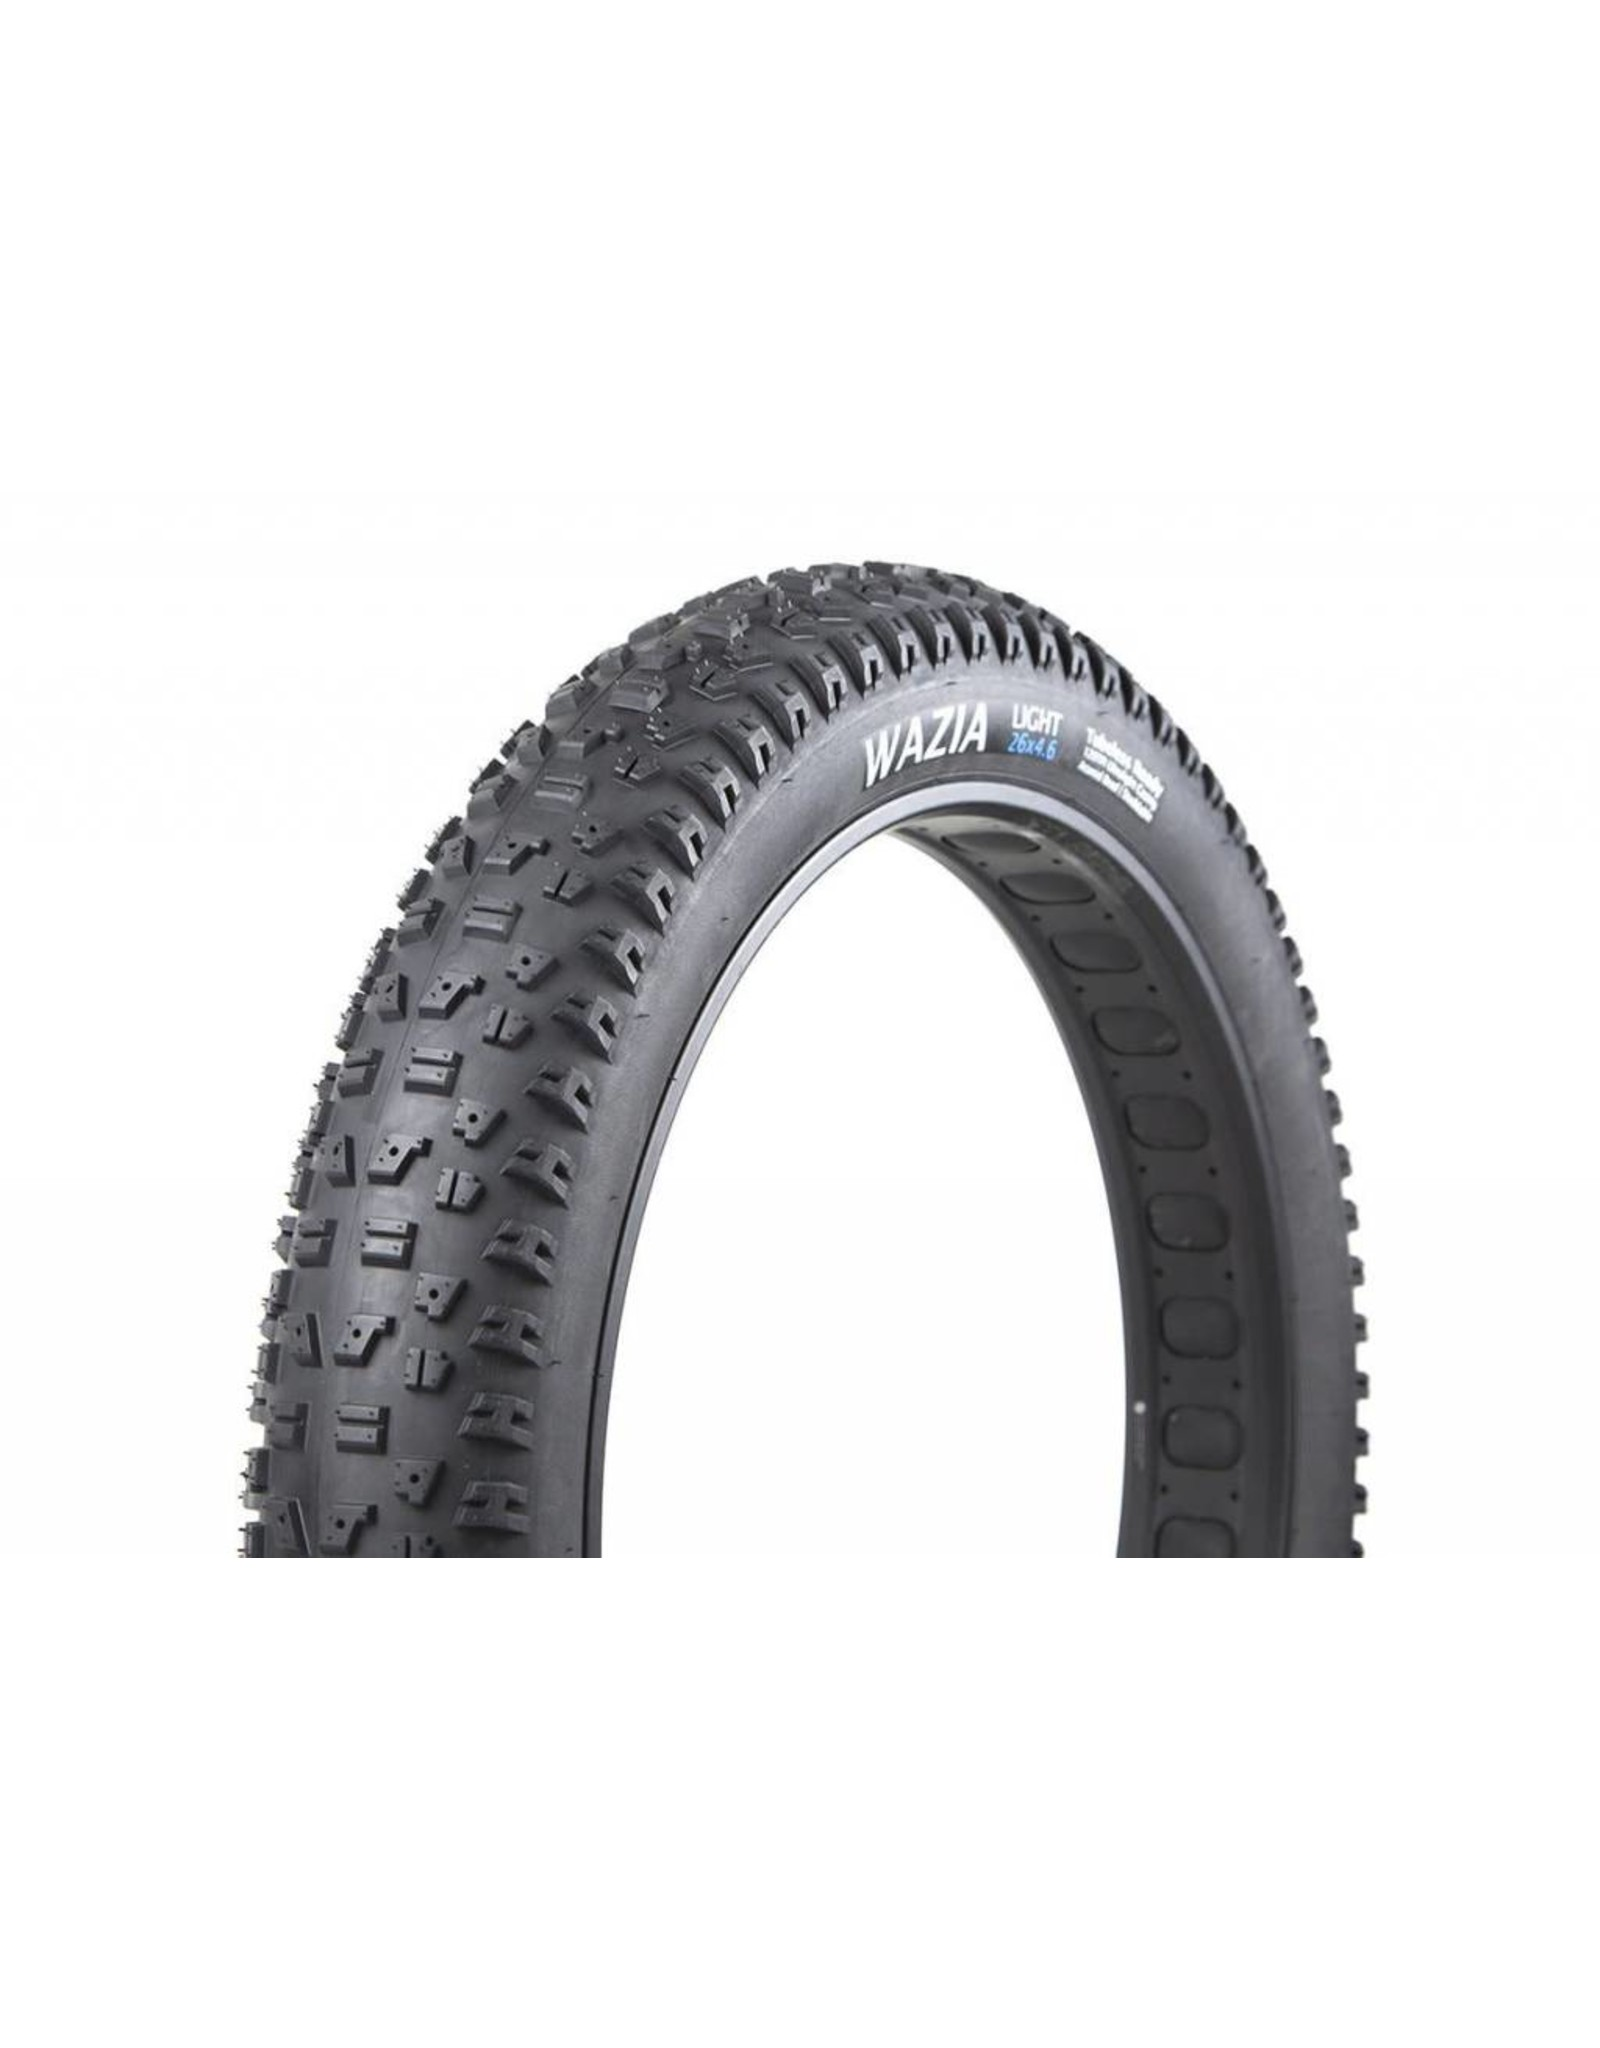 Terrene Wazia Light 26x4.6 TLR ( tubeless ready )  - no studs !